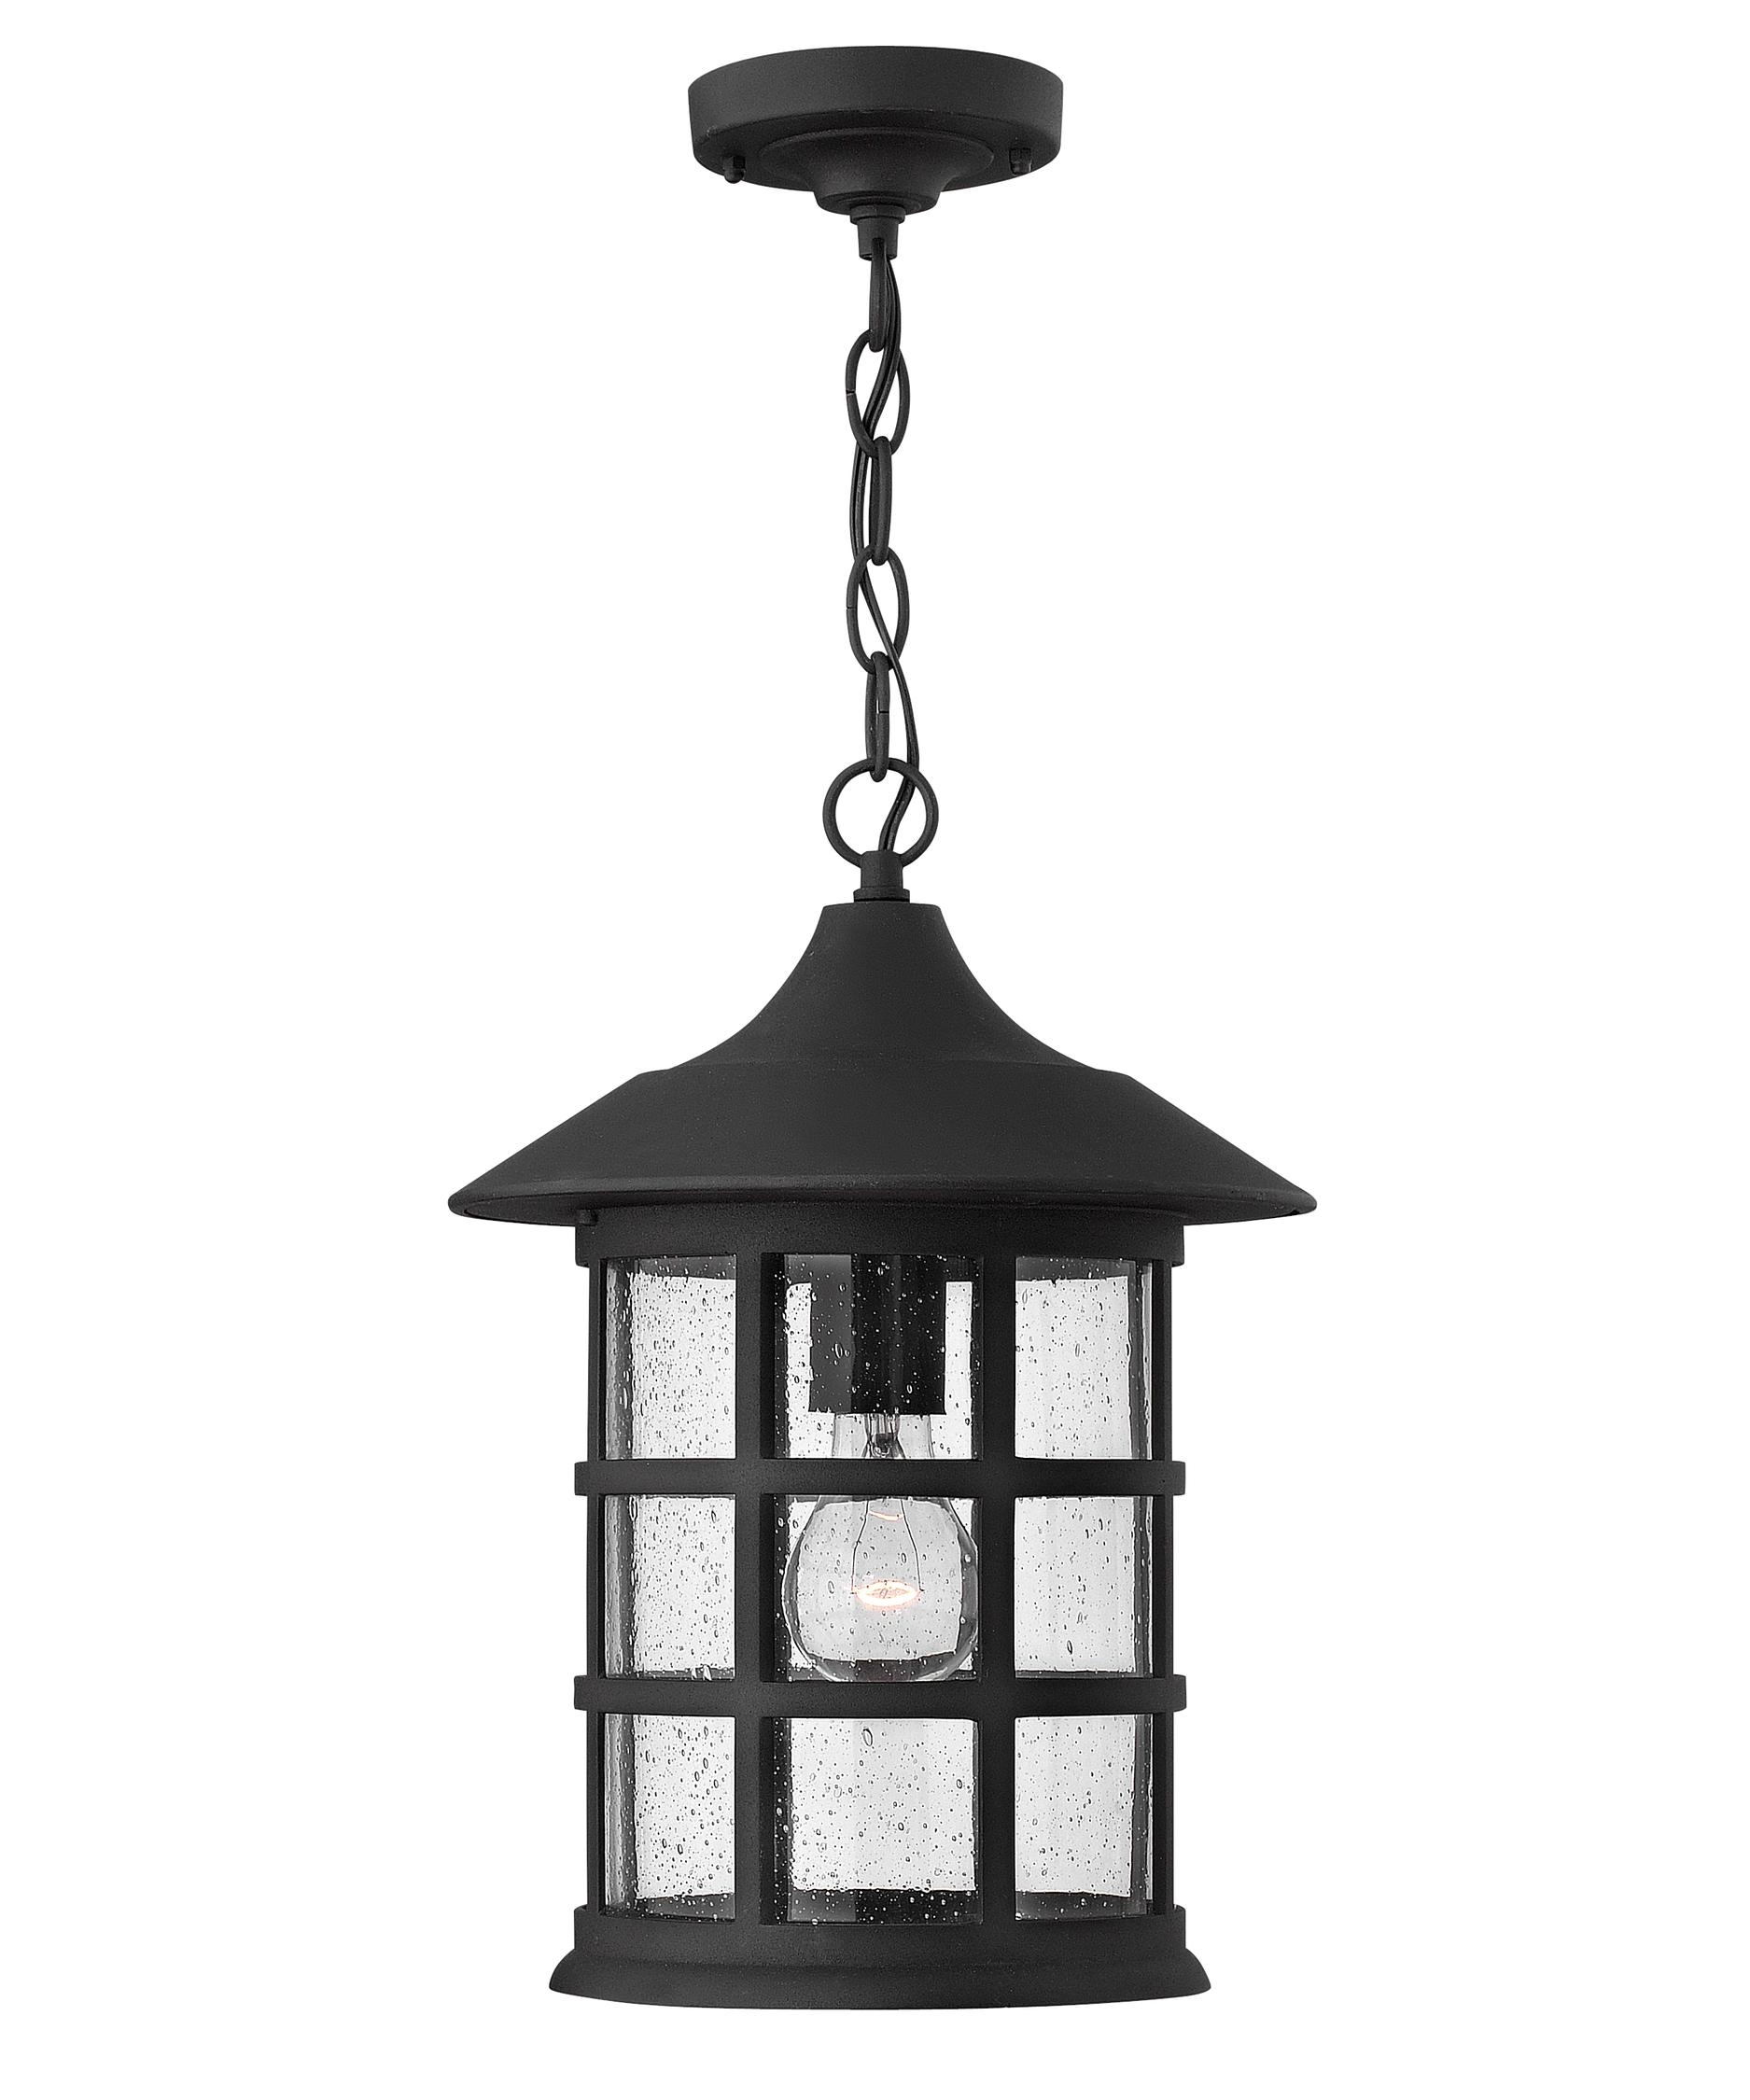 Outdoor Ceiling Lights: Hanging, Flush-Mount Lights in Outdoor Hanging Electric Lanterns (Image 15 of 20)